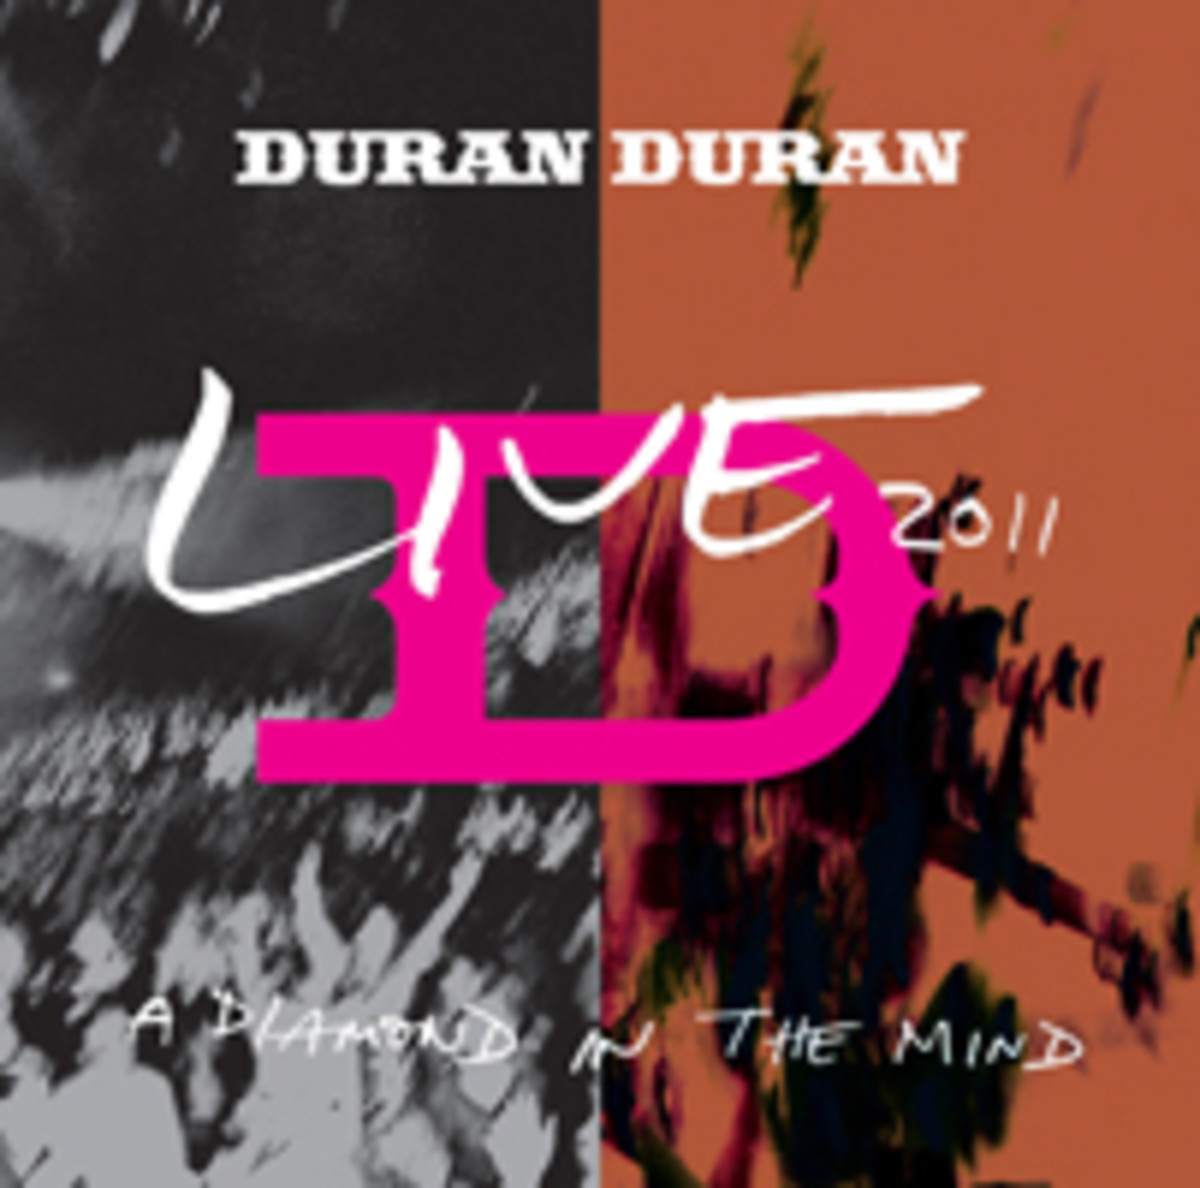 Duran Duran A Diamond in The Rough